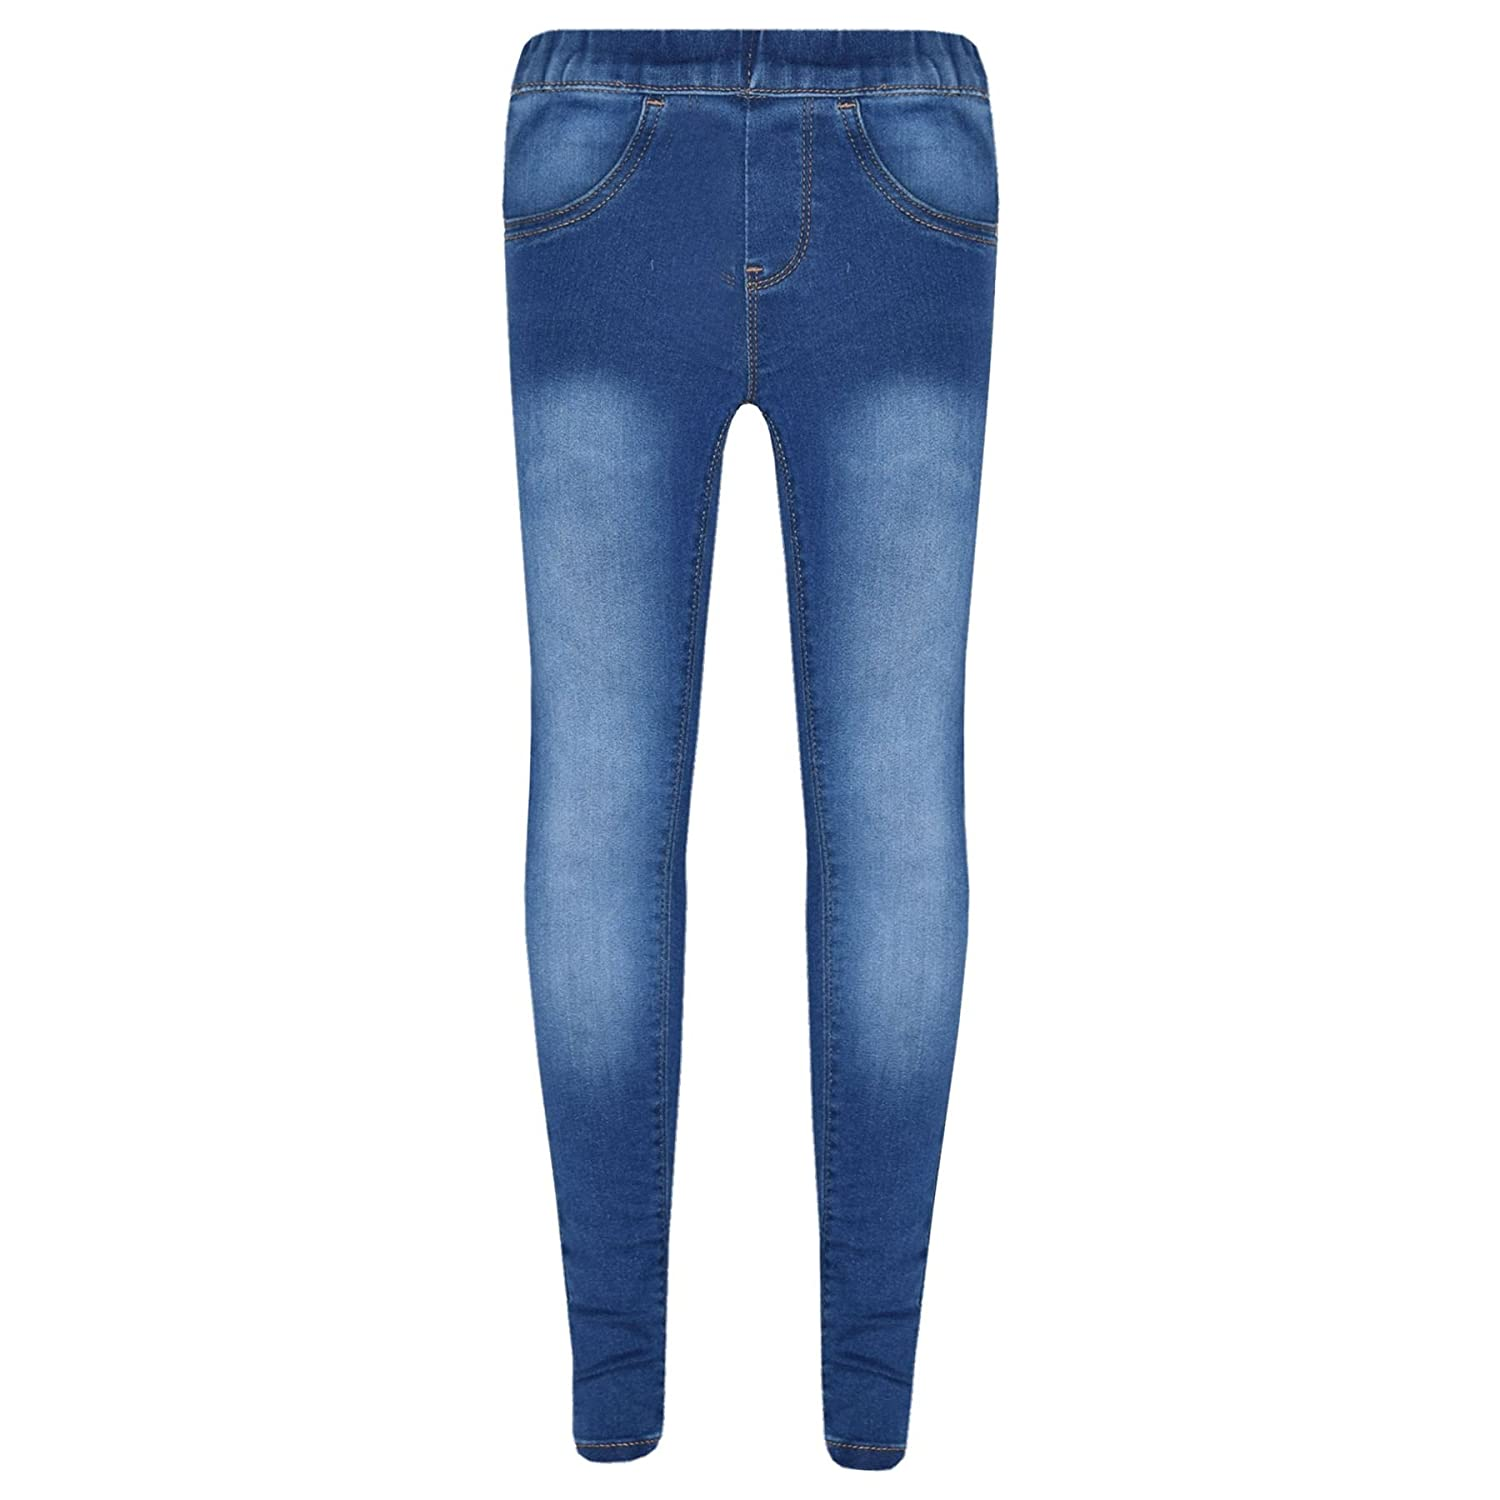 d229a595d7db3 A2Z 4 Kids® Girls Stretchy Jeans Kids Ripped Denim Pants Fashion Trousers  Jeggings. A2Z 4 Kids® Is Our Trade Mark, It Is Exclusive To Our Amazon Shop  Only.